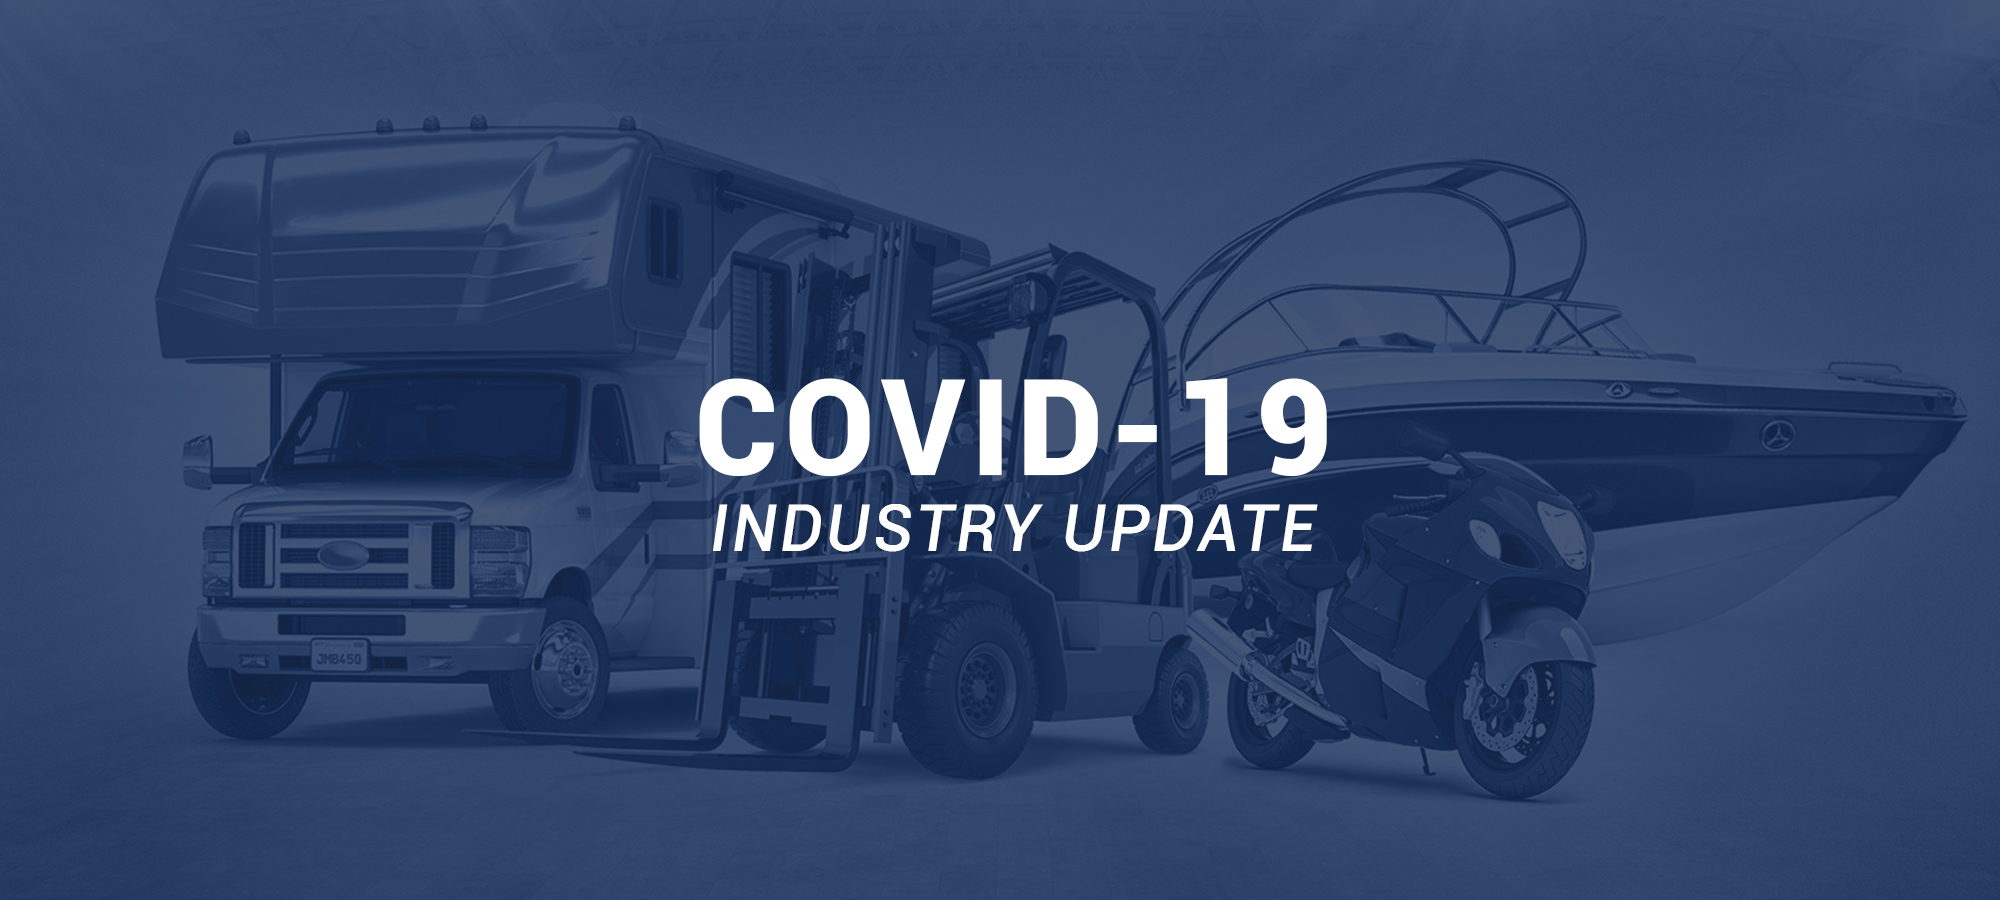 Powersports and RV Analytics During Covid-19 Pandemic - 4/20/2020